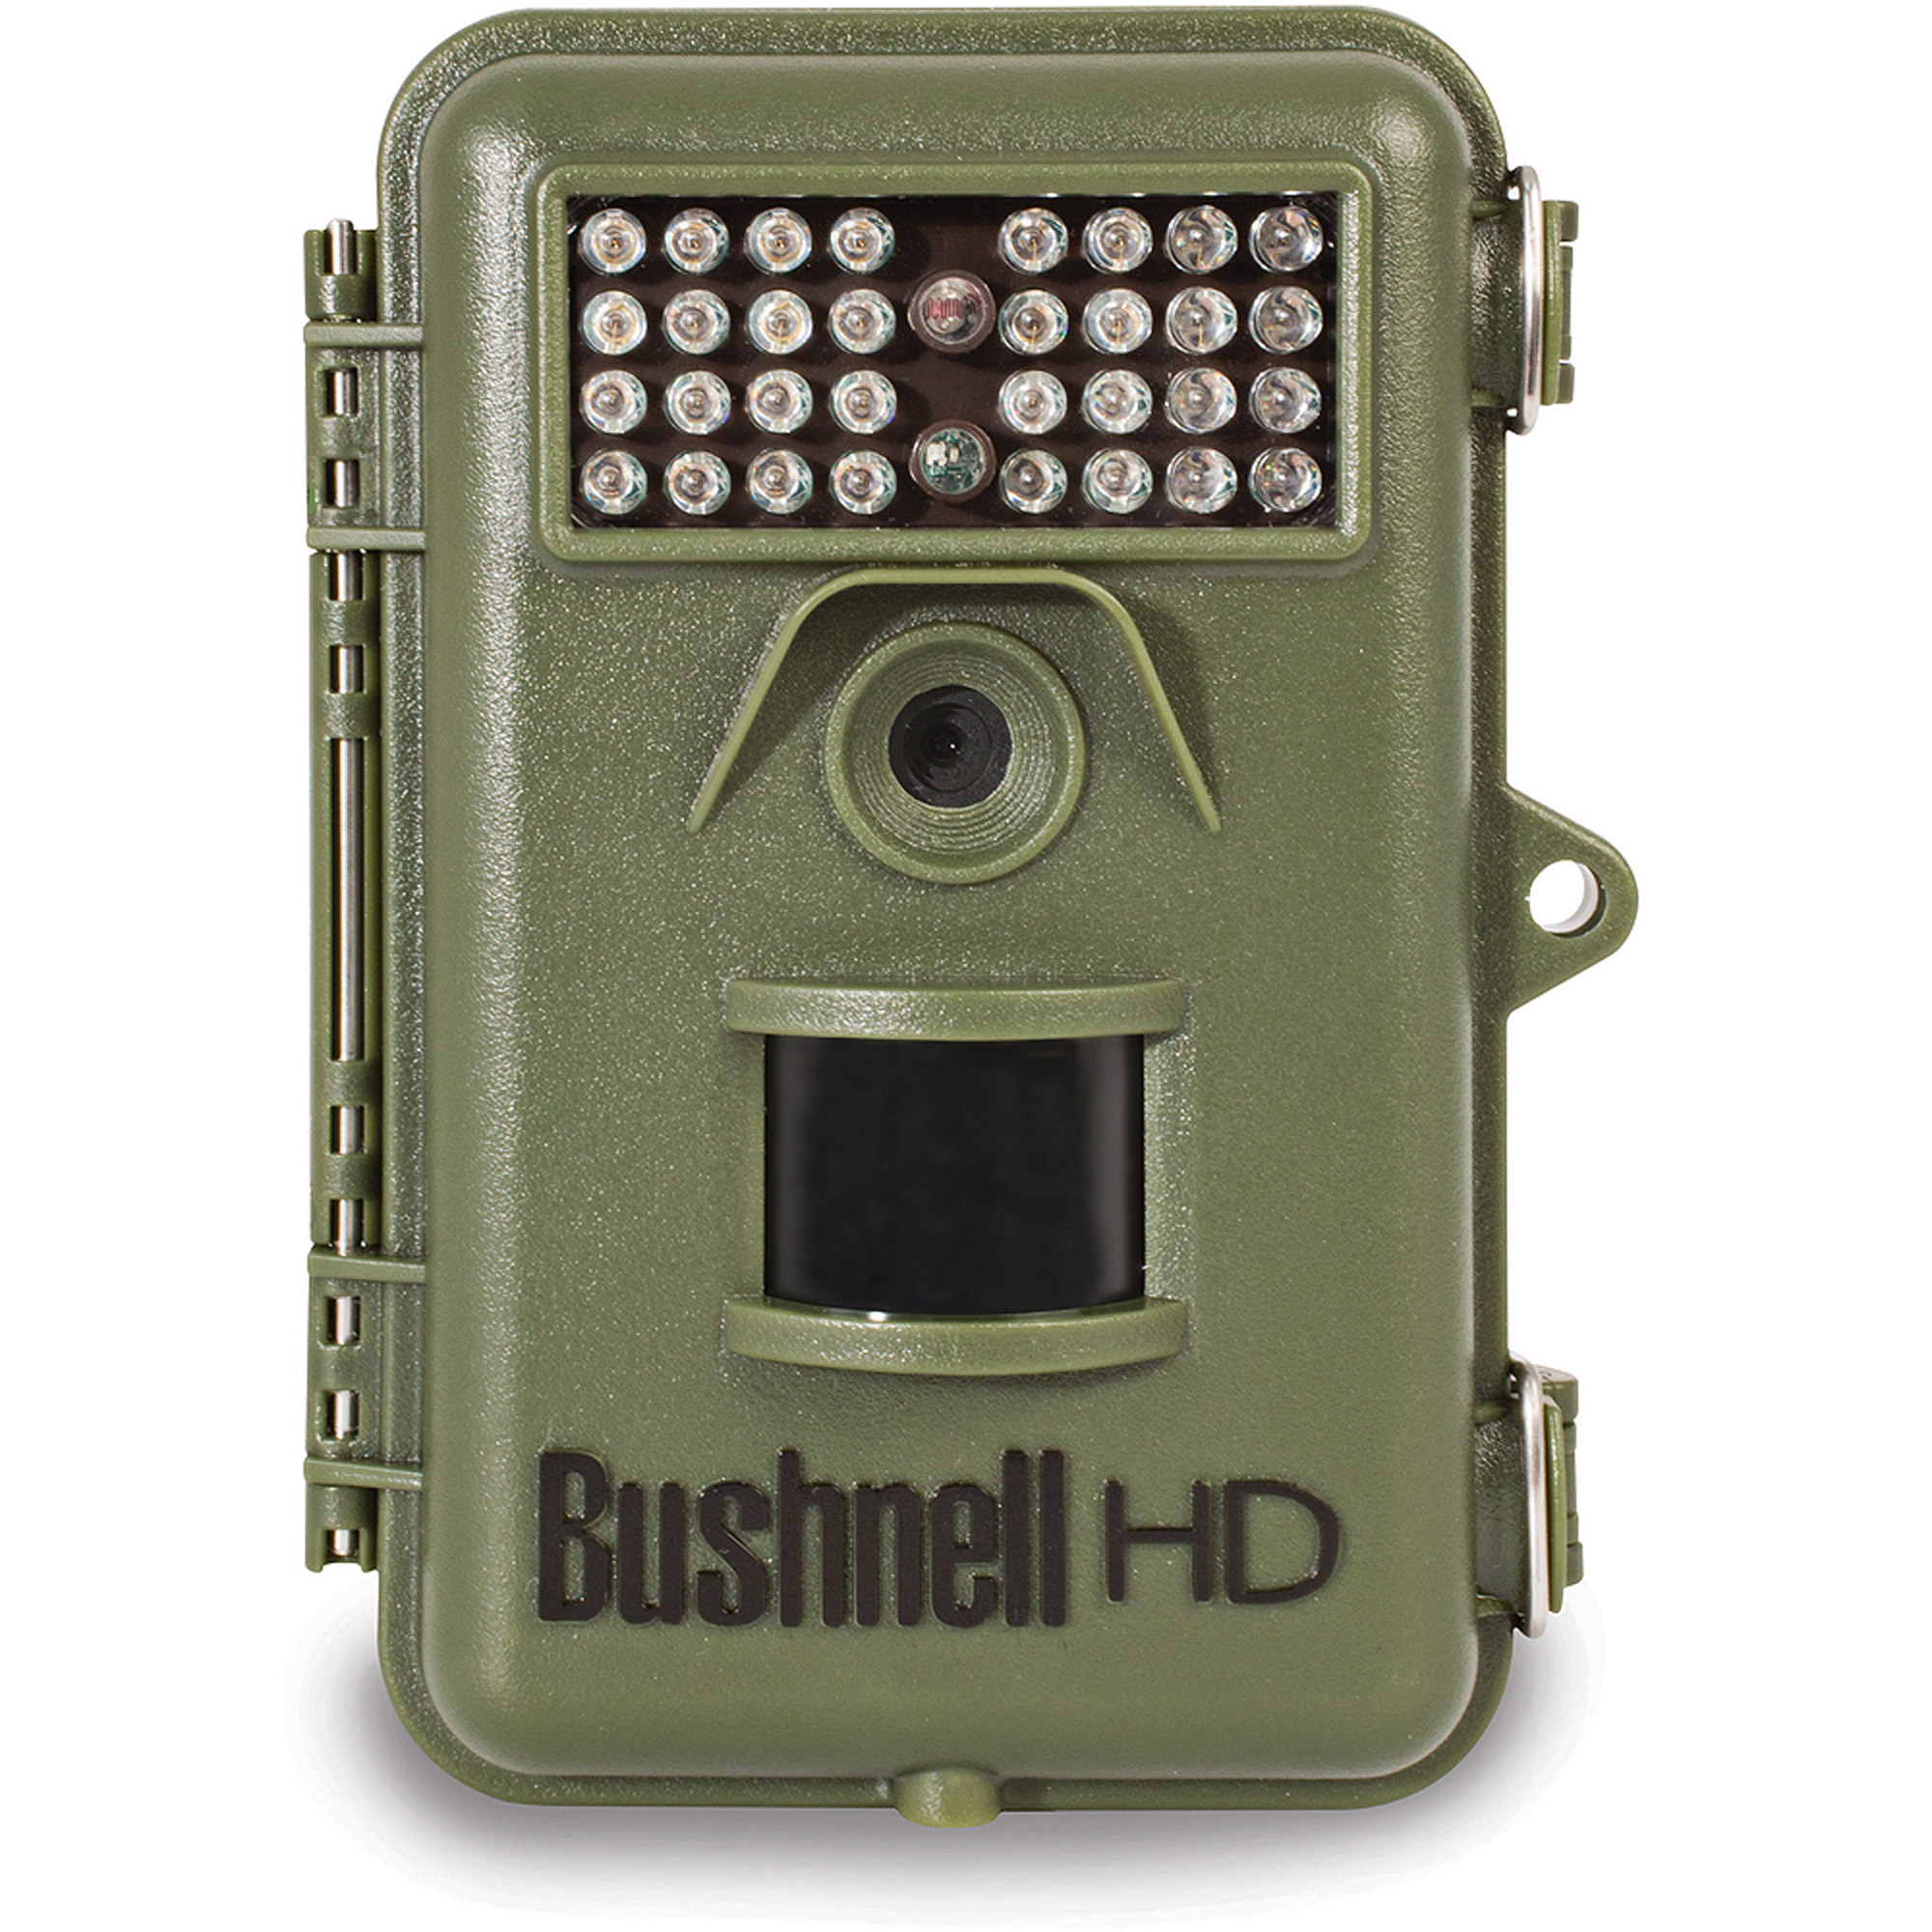 Bushnell 12MP Natureview Essential Trail HD Camera, Green, Low Glow